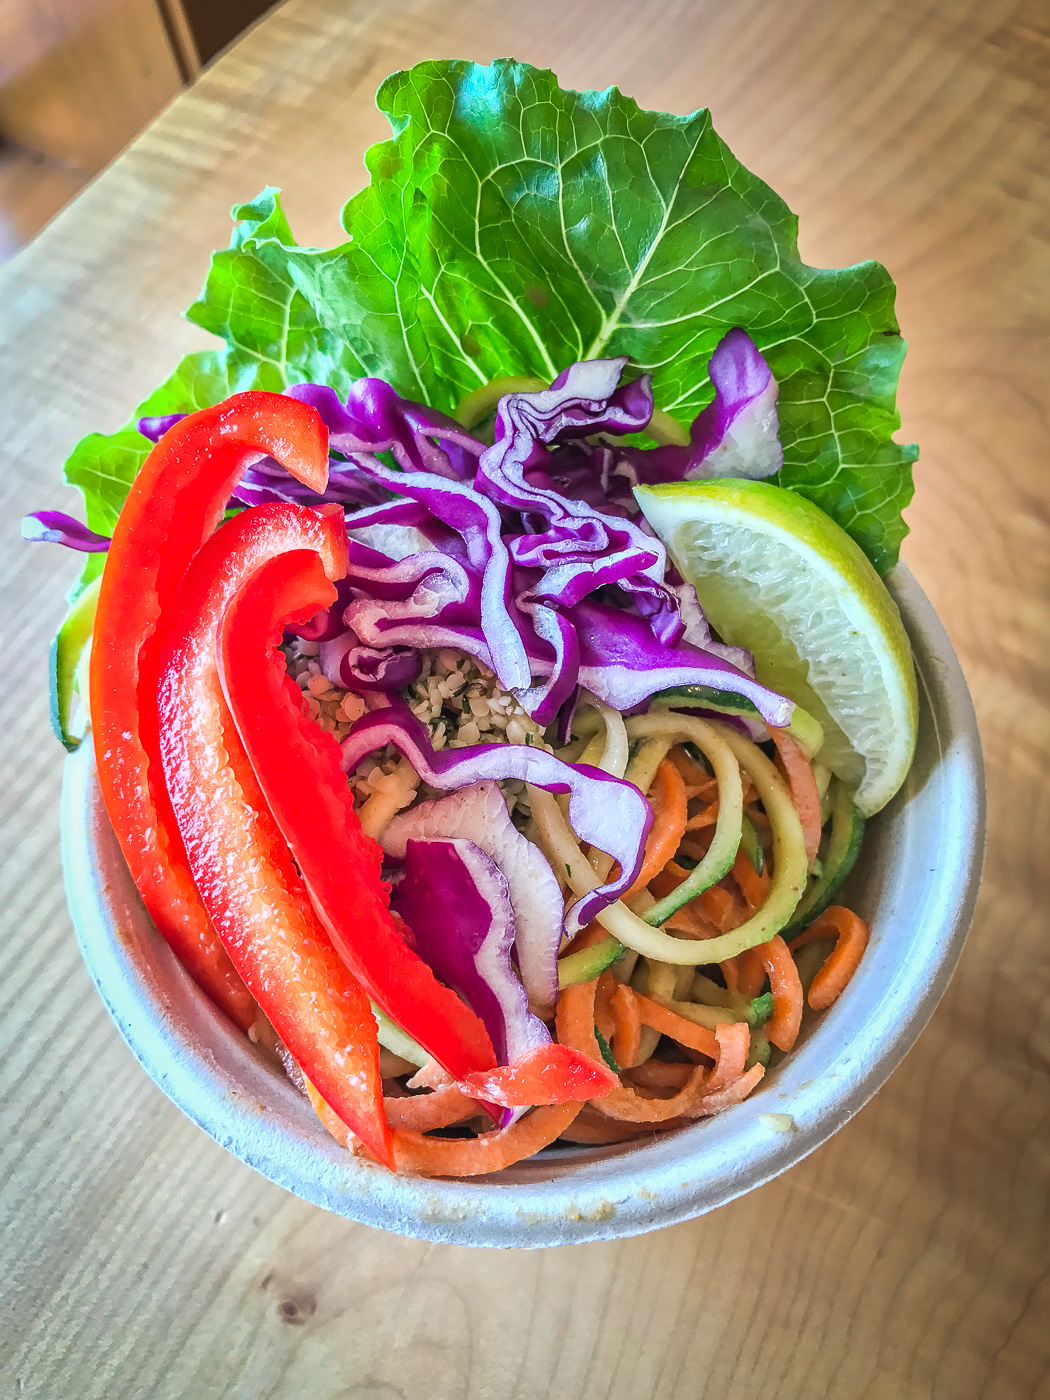 A small bowl filled with colorful vegetables